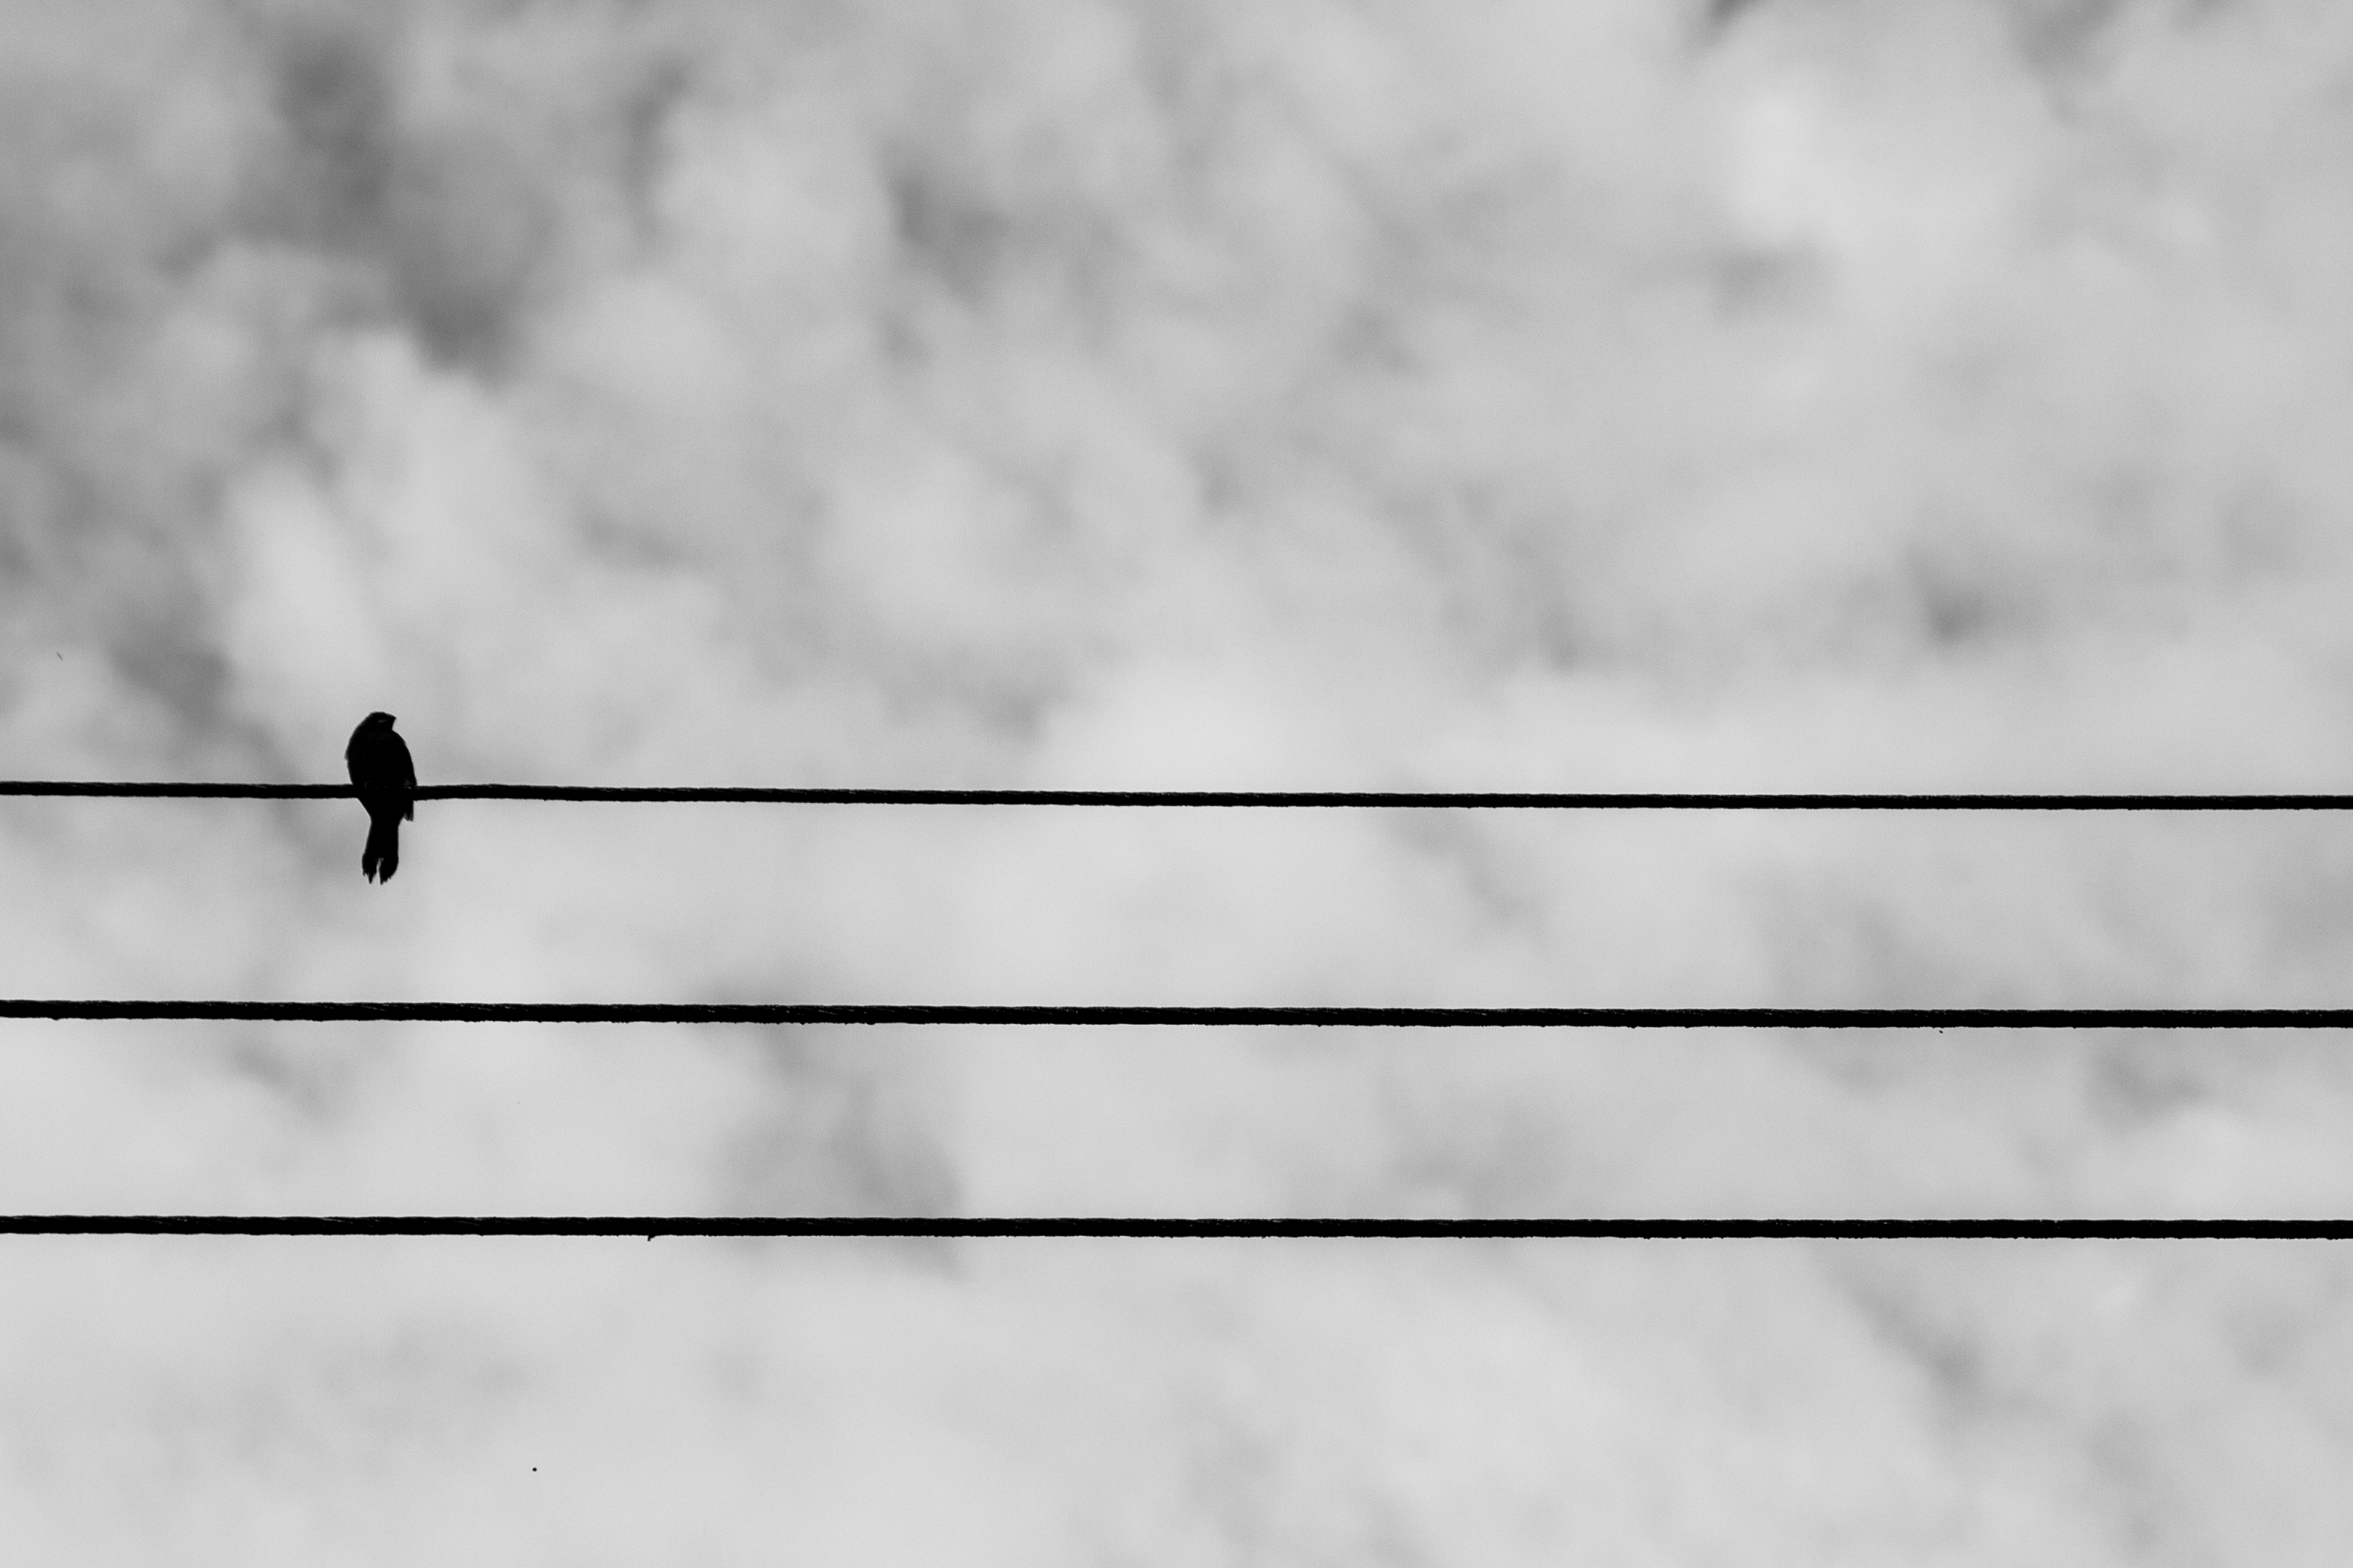 Bird on a Wire | fractalthoughts